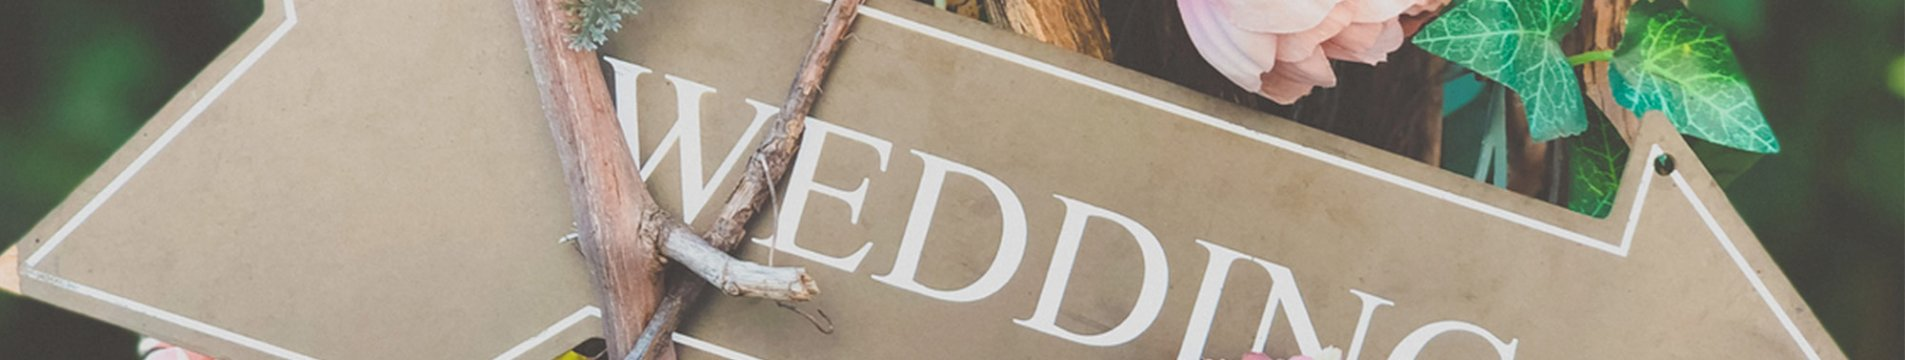 Rustic wedding sign for the entrance with colorful flowers